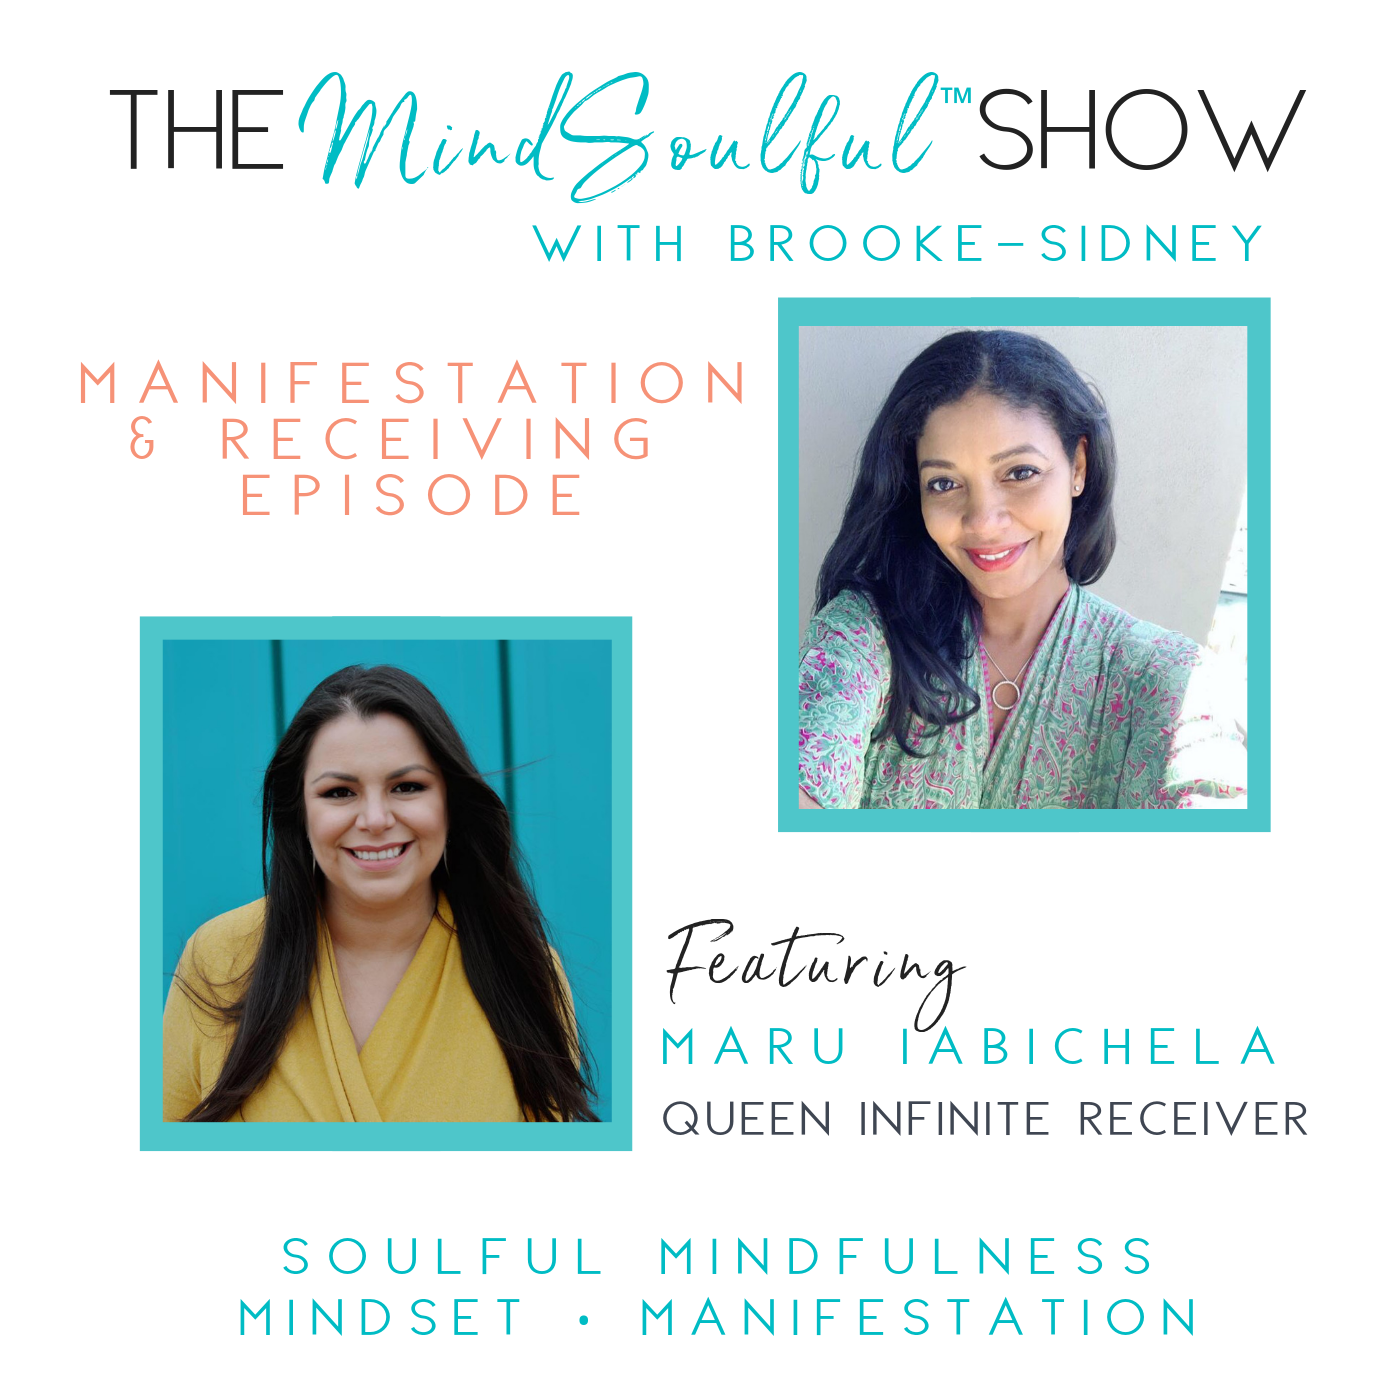 The MindSoulful Show with Maru Iabichela.png